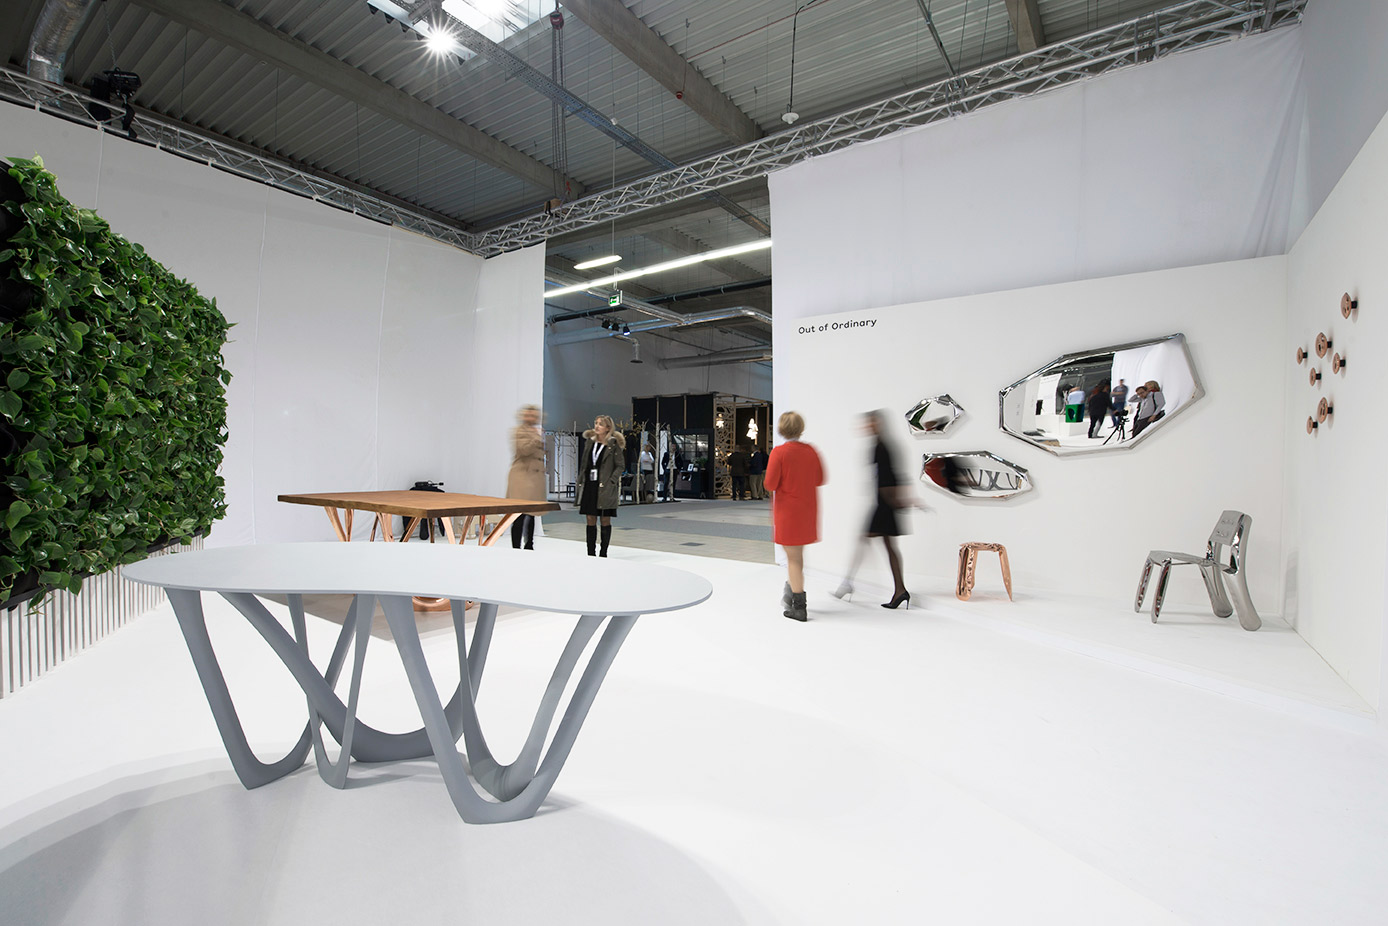 Warsaw Home Expo Was The First Edition Of An International Exhibition  Concerning Interior Design, Organized In A New International Exhibition U0026  Congress ...